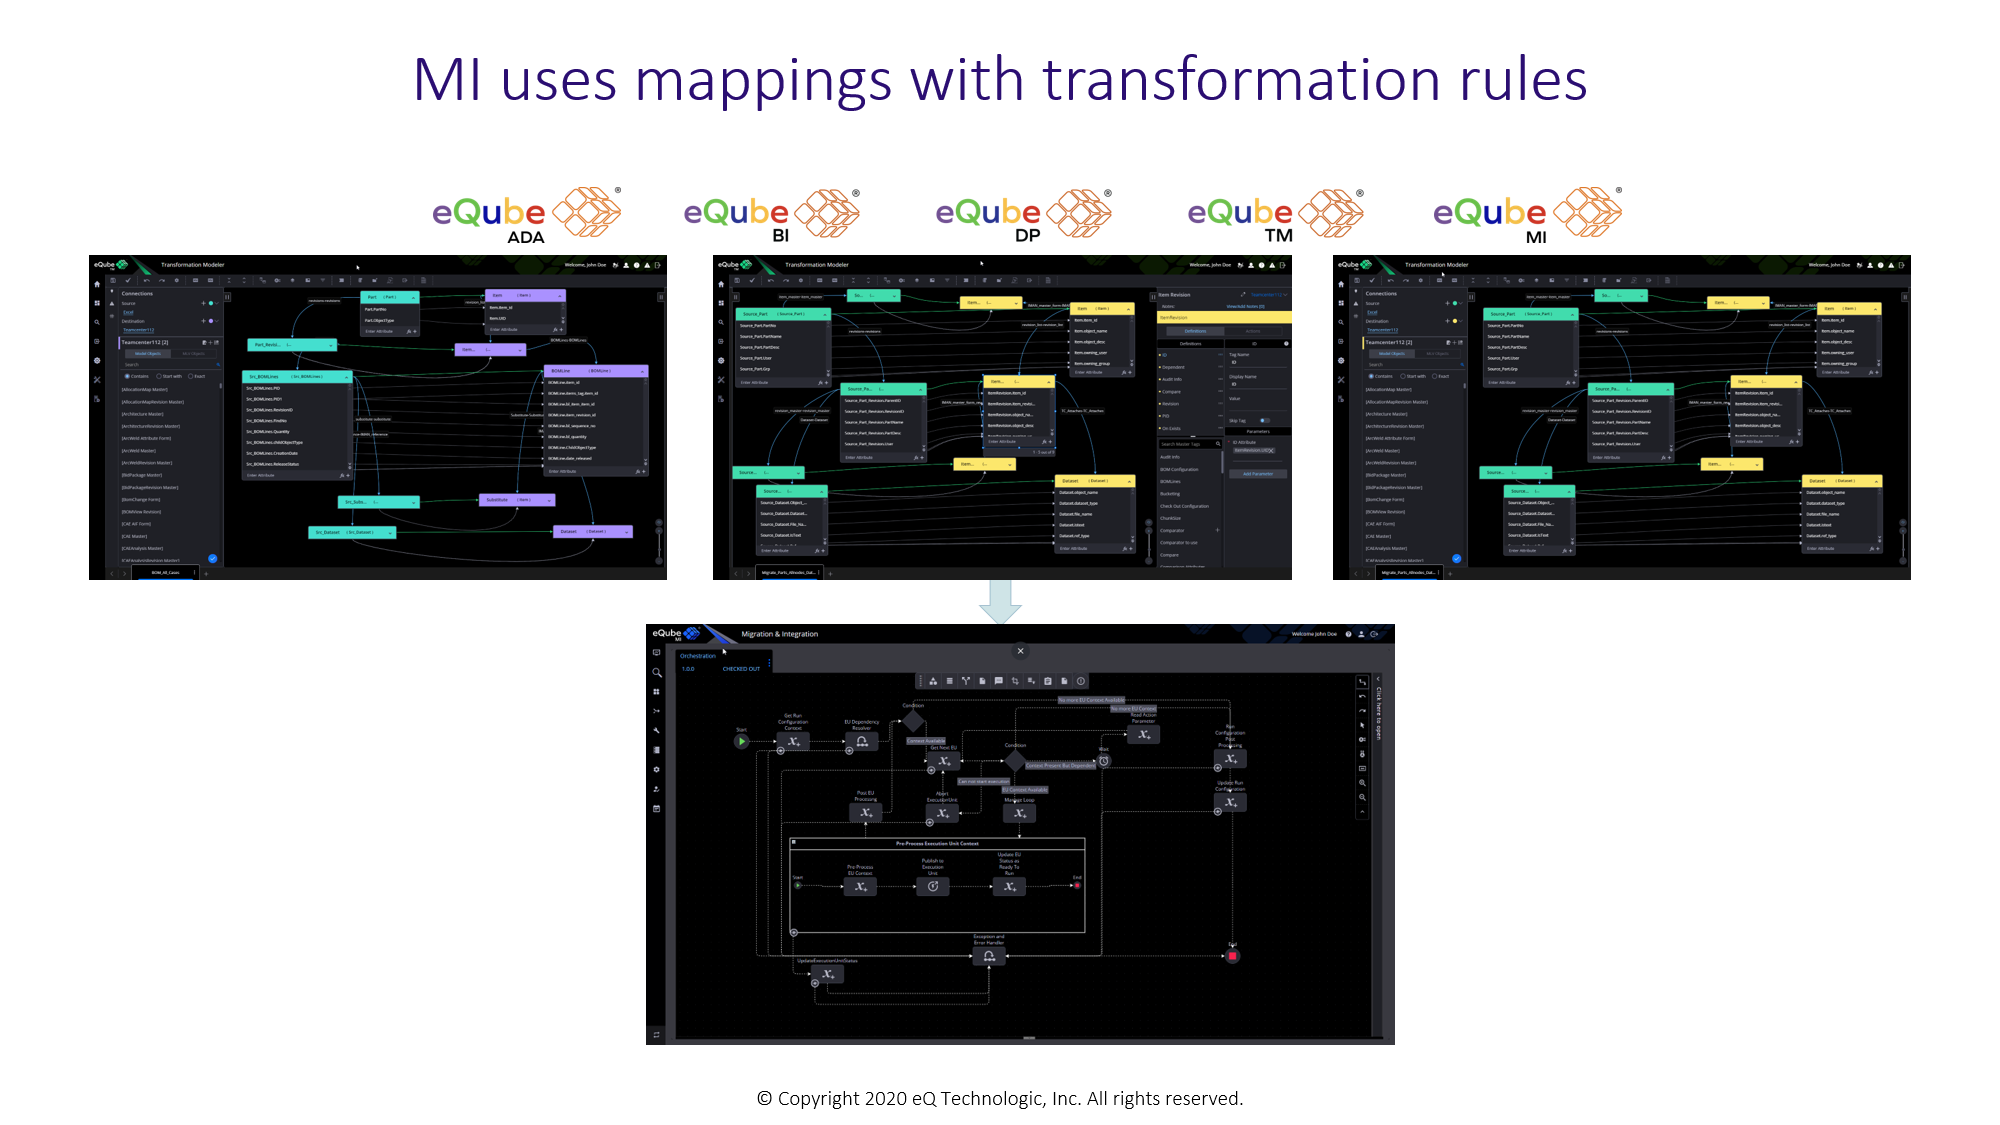 eQube-TM maps and transformation rules used by  eQube-MI for migrating or integrating data